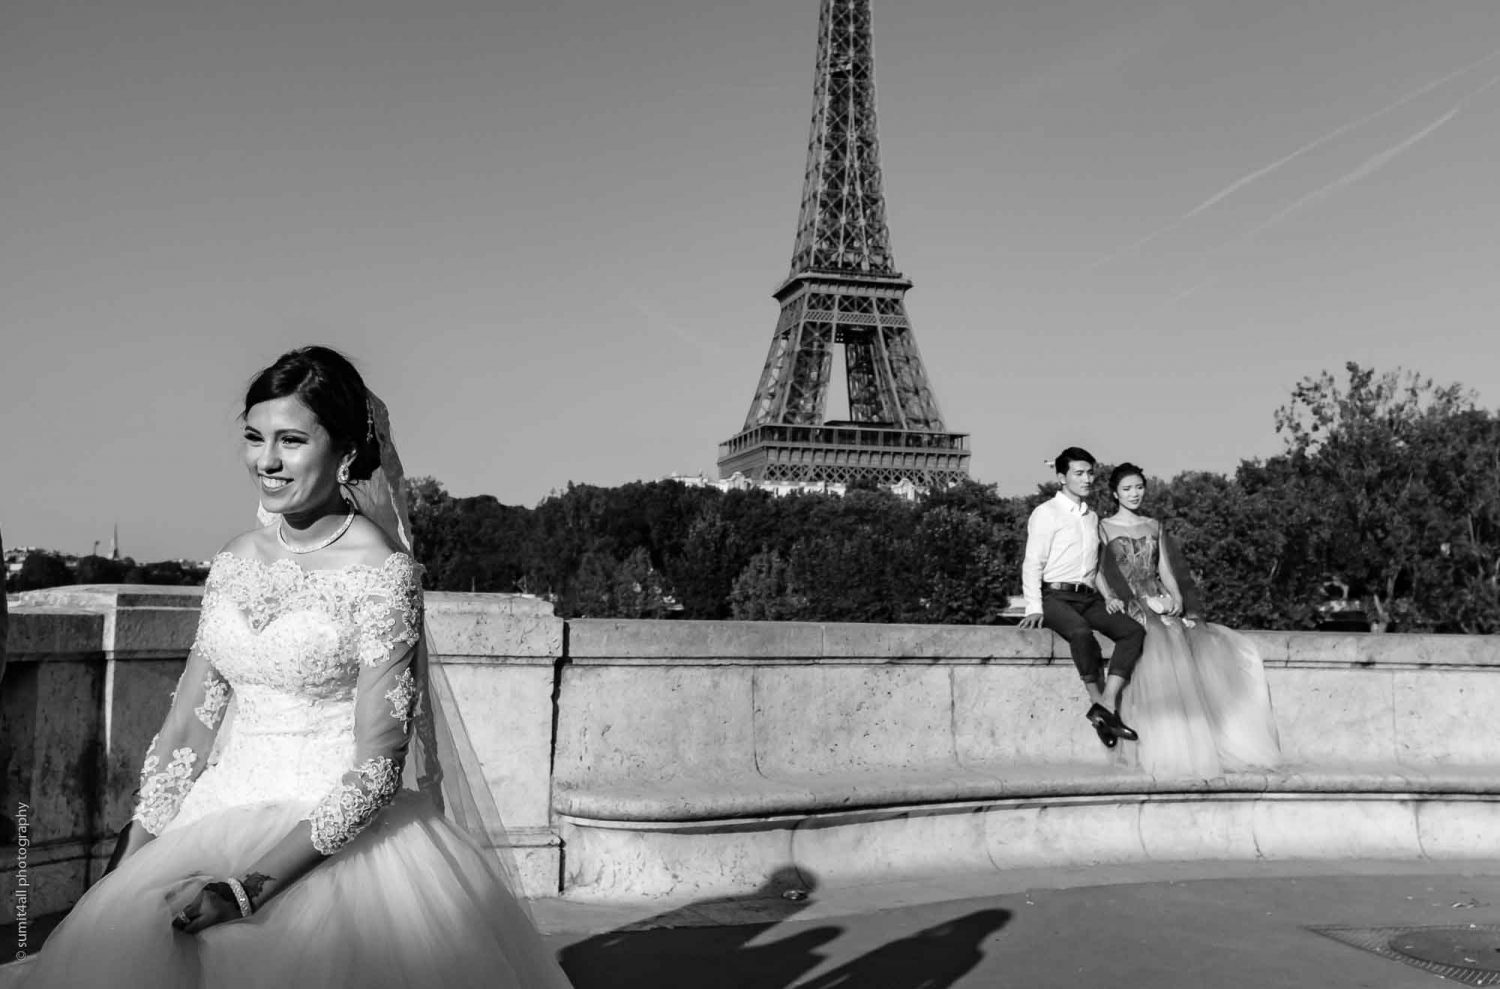 A Wedding Shoot Near The Eiffel Tower in Paris